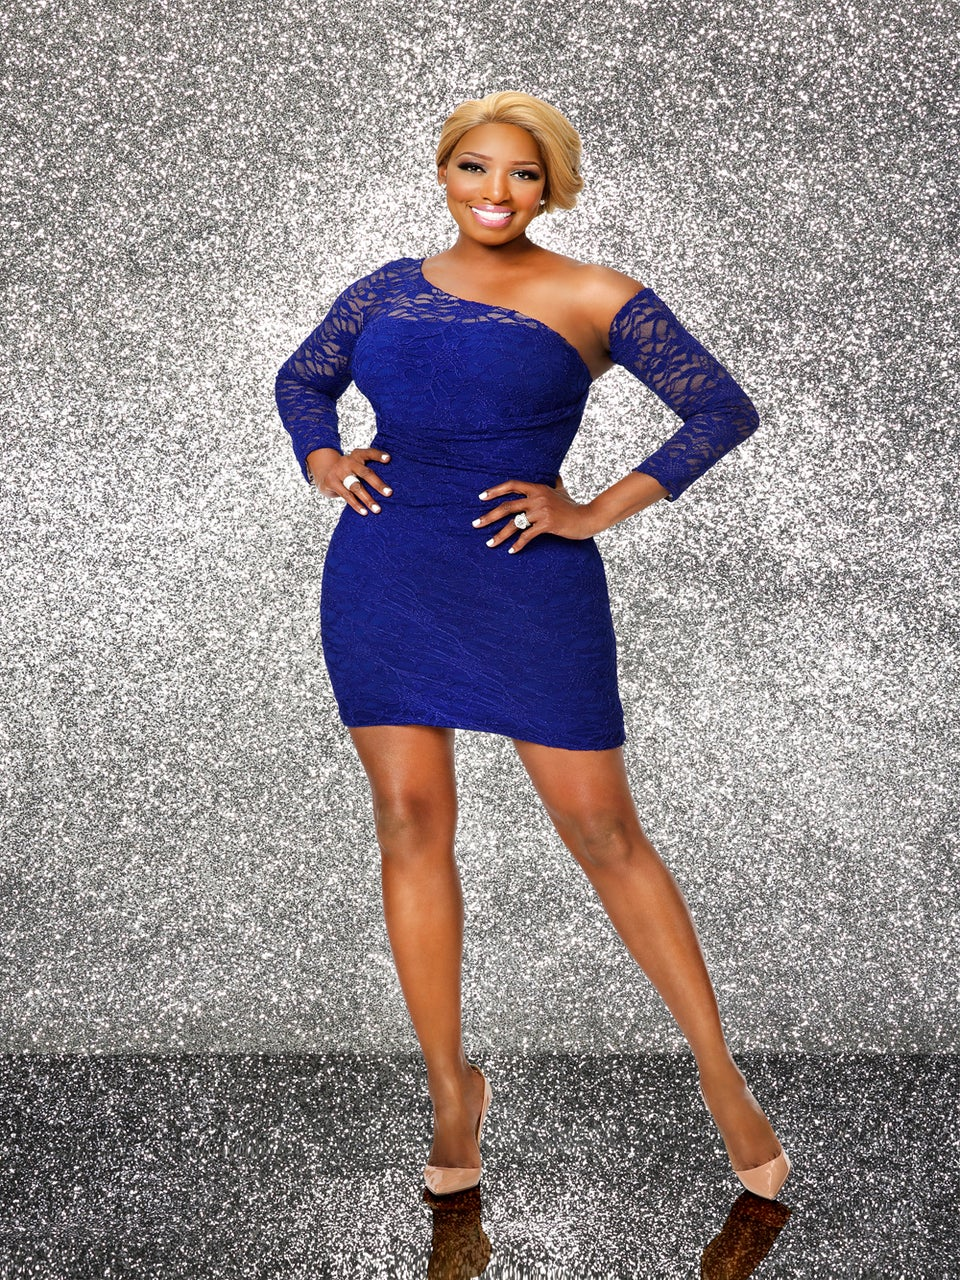 NeNe Leakes' Weekly 'Dancing With The Stars' Check-In: 'I'm Exhausted, But Pushing On'